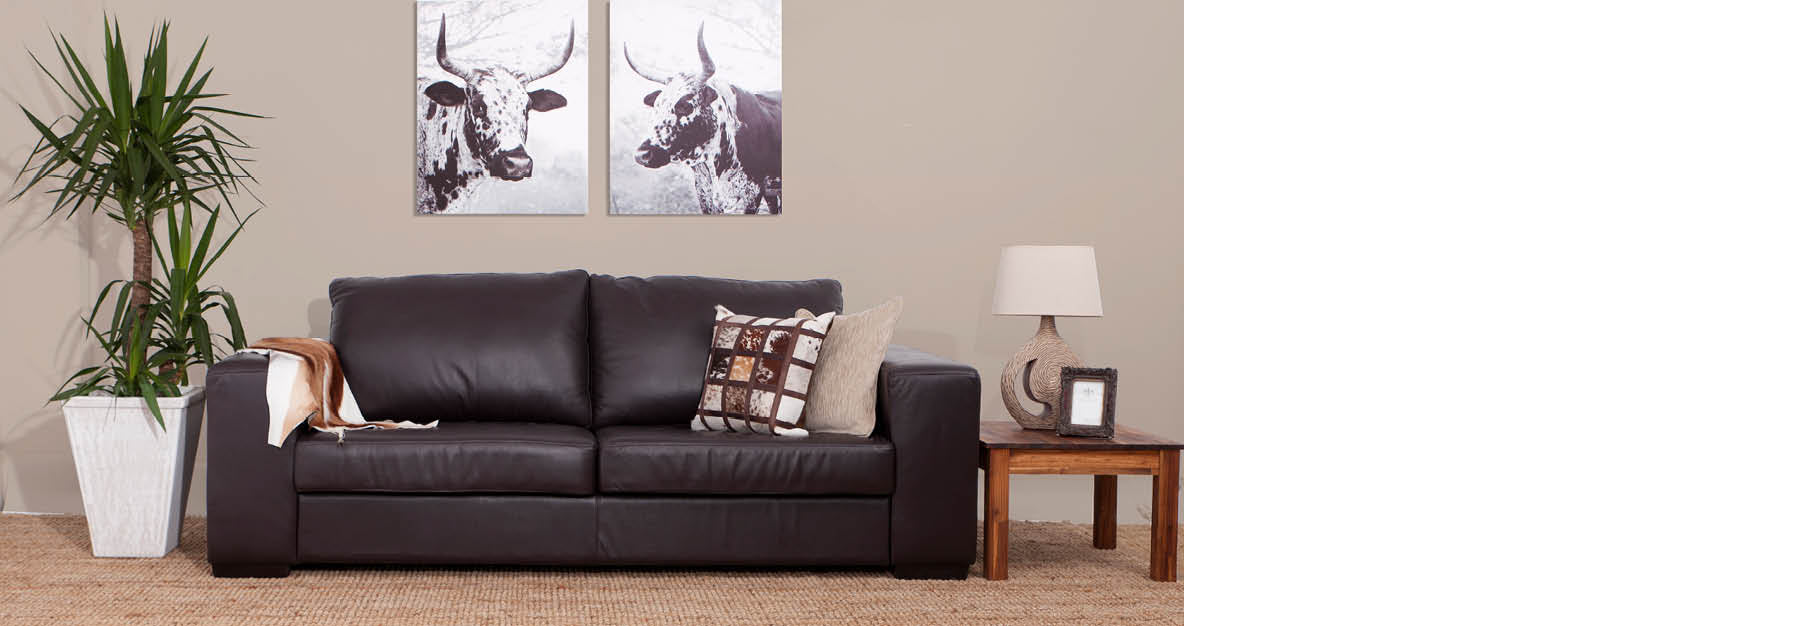 Leather Furniture Buy Fabric Sofa Dining Table Leather